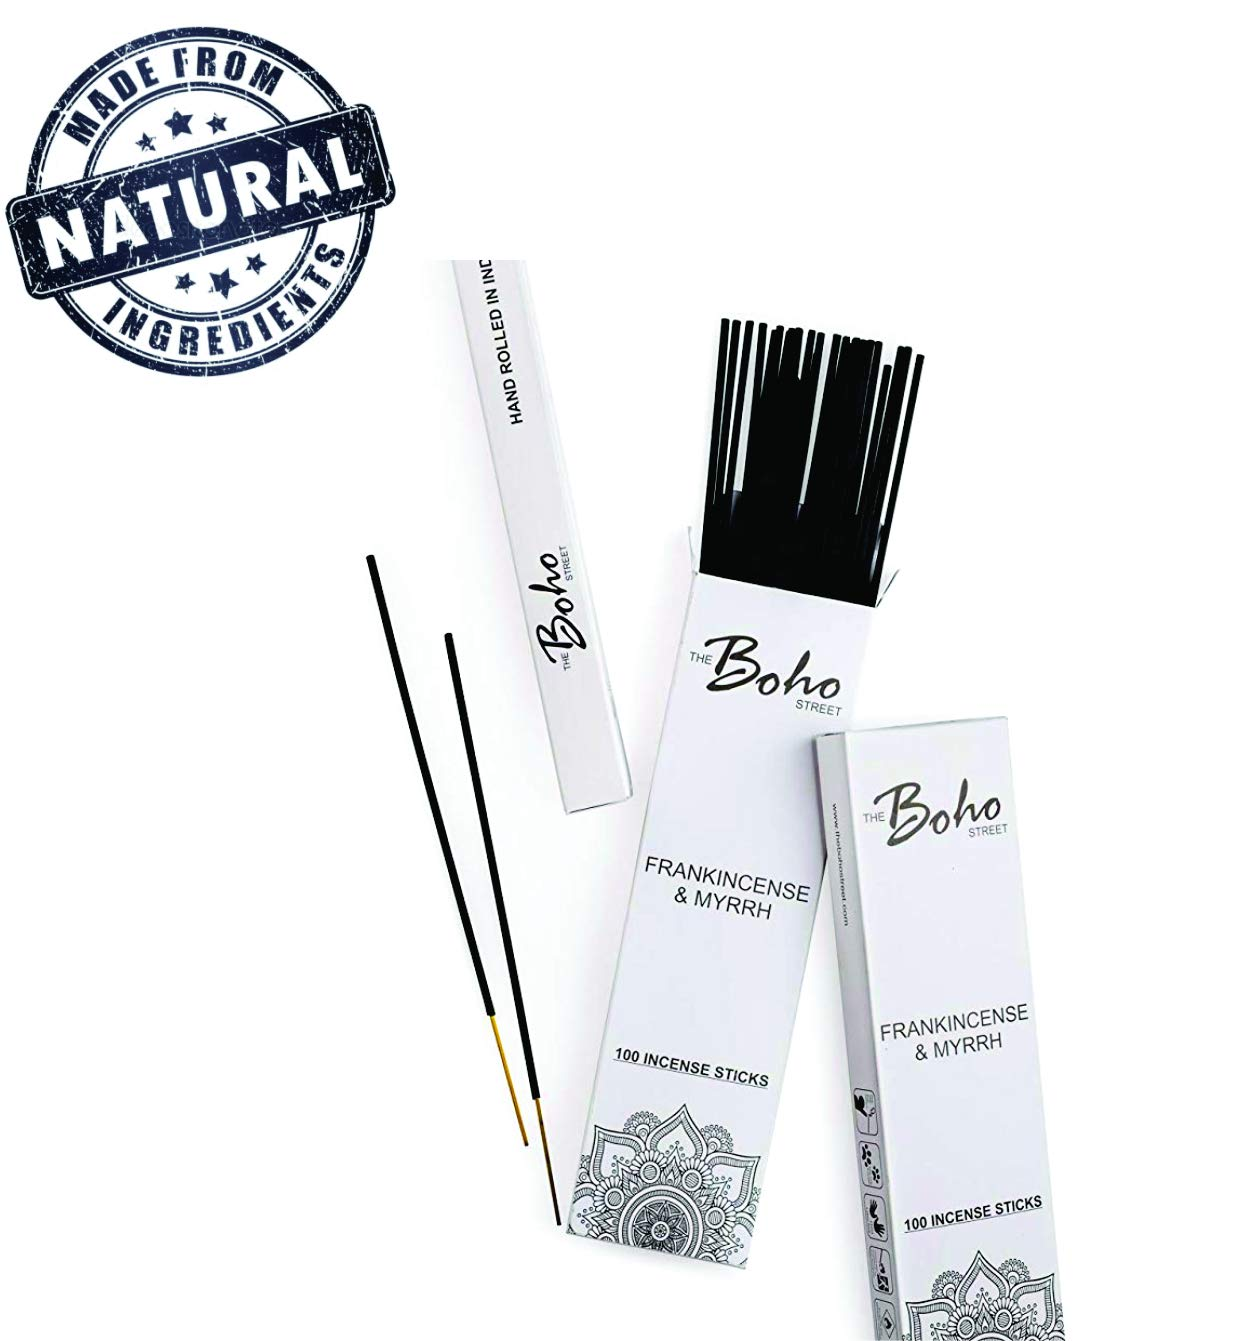 The Boho Street Premium Incense Sticks - Frankincense and Myrrh 100% Hand Rolled Hand Dipped in India 100 Sticks Pack (100)